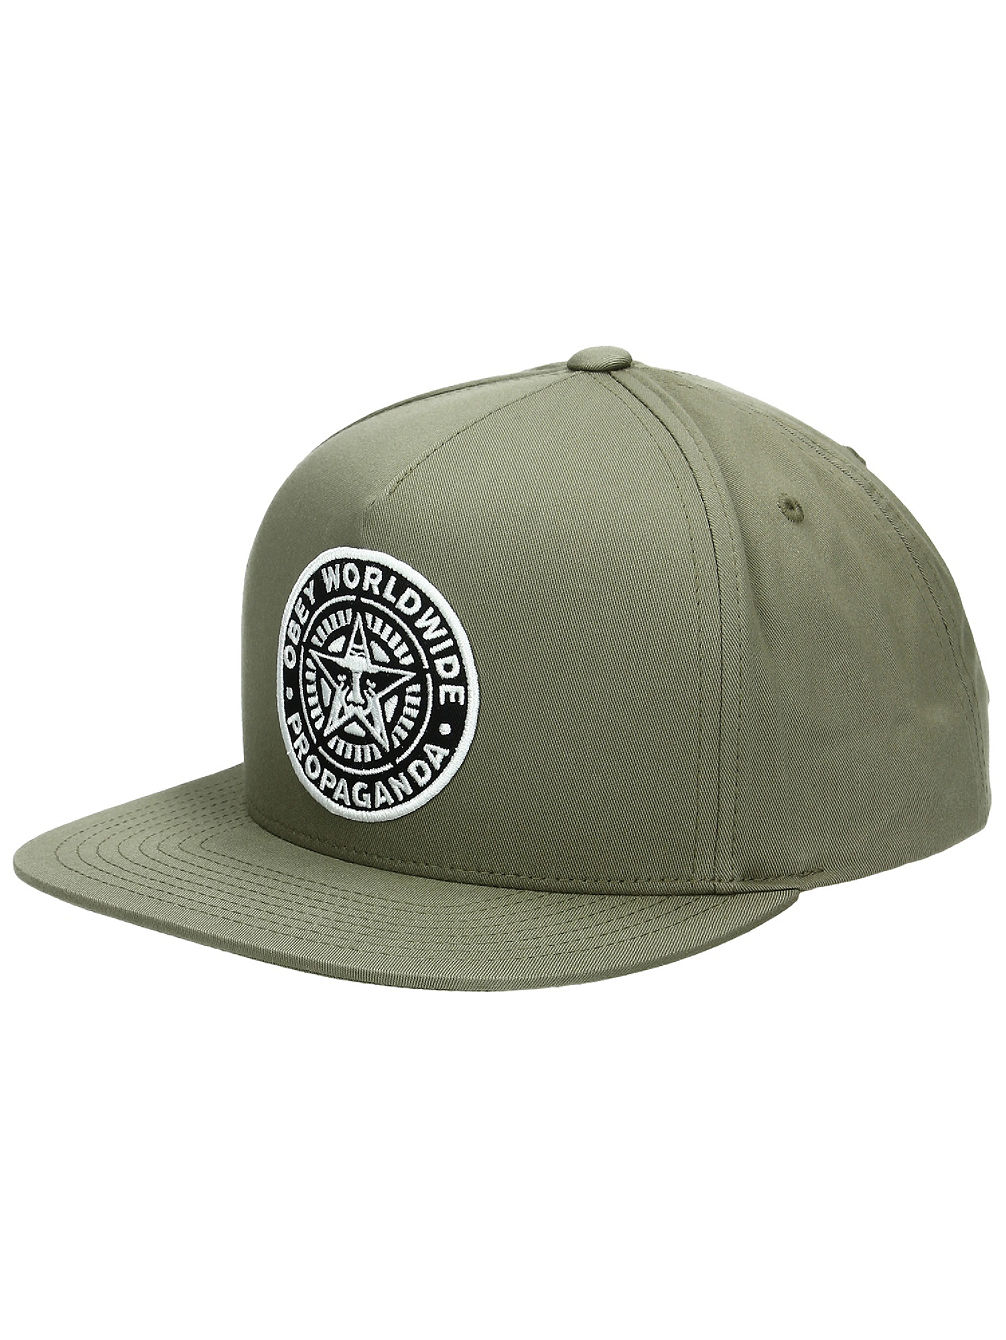 0f21fc4db8887 Buy Obey Classic Patch Snapback Cap online at Blue Tomato